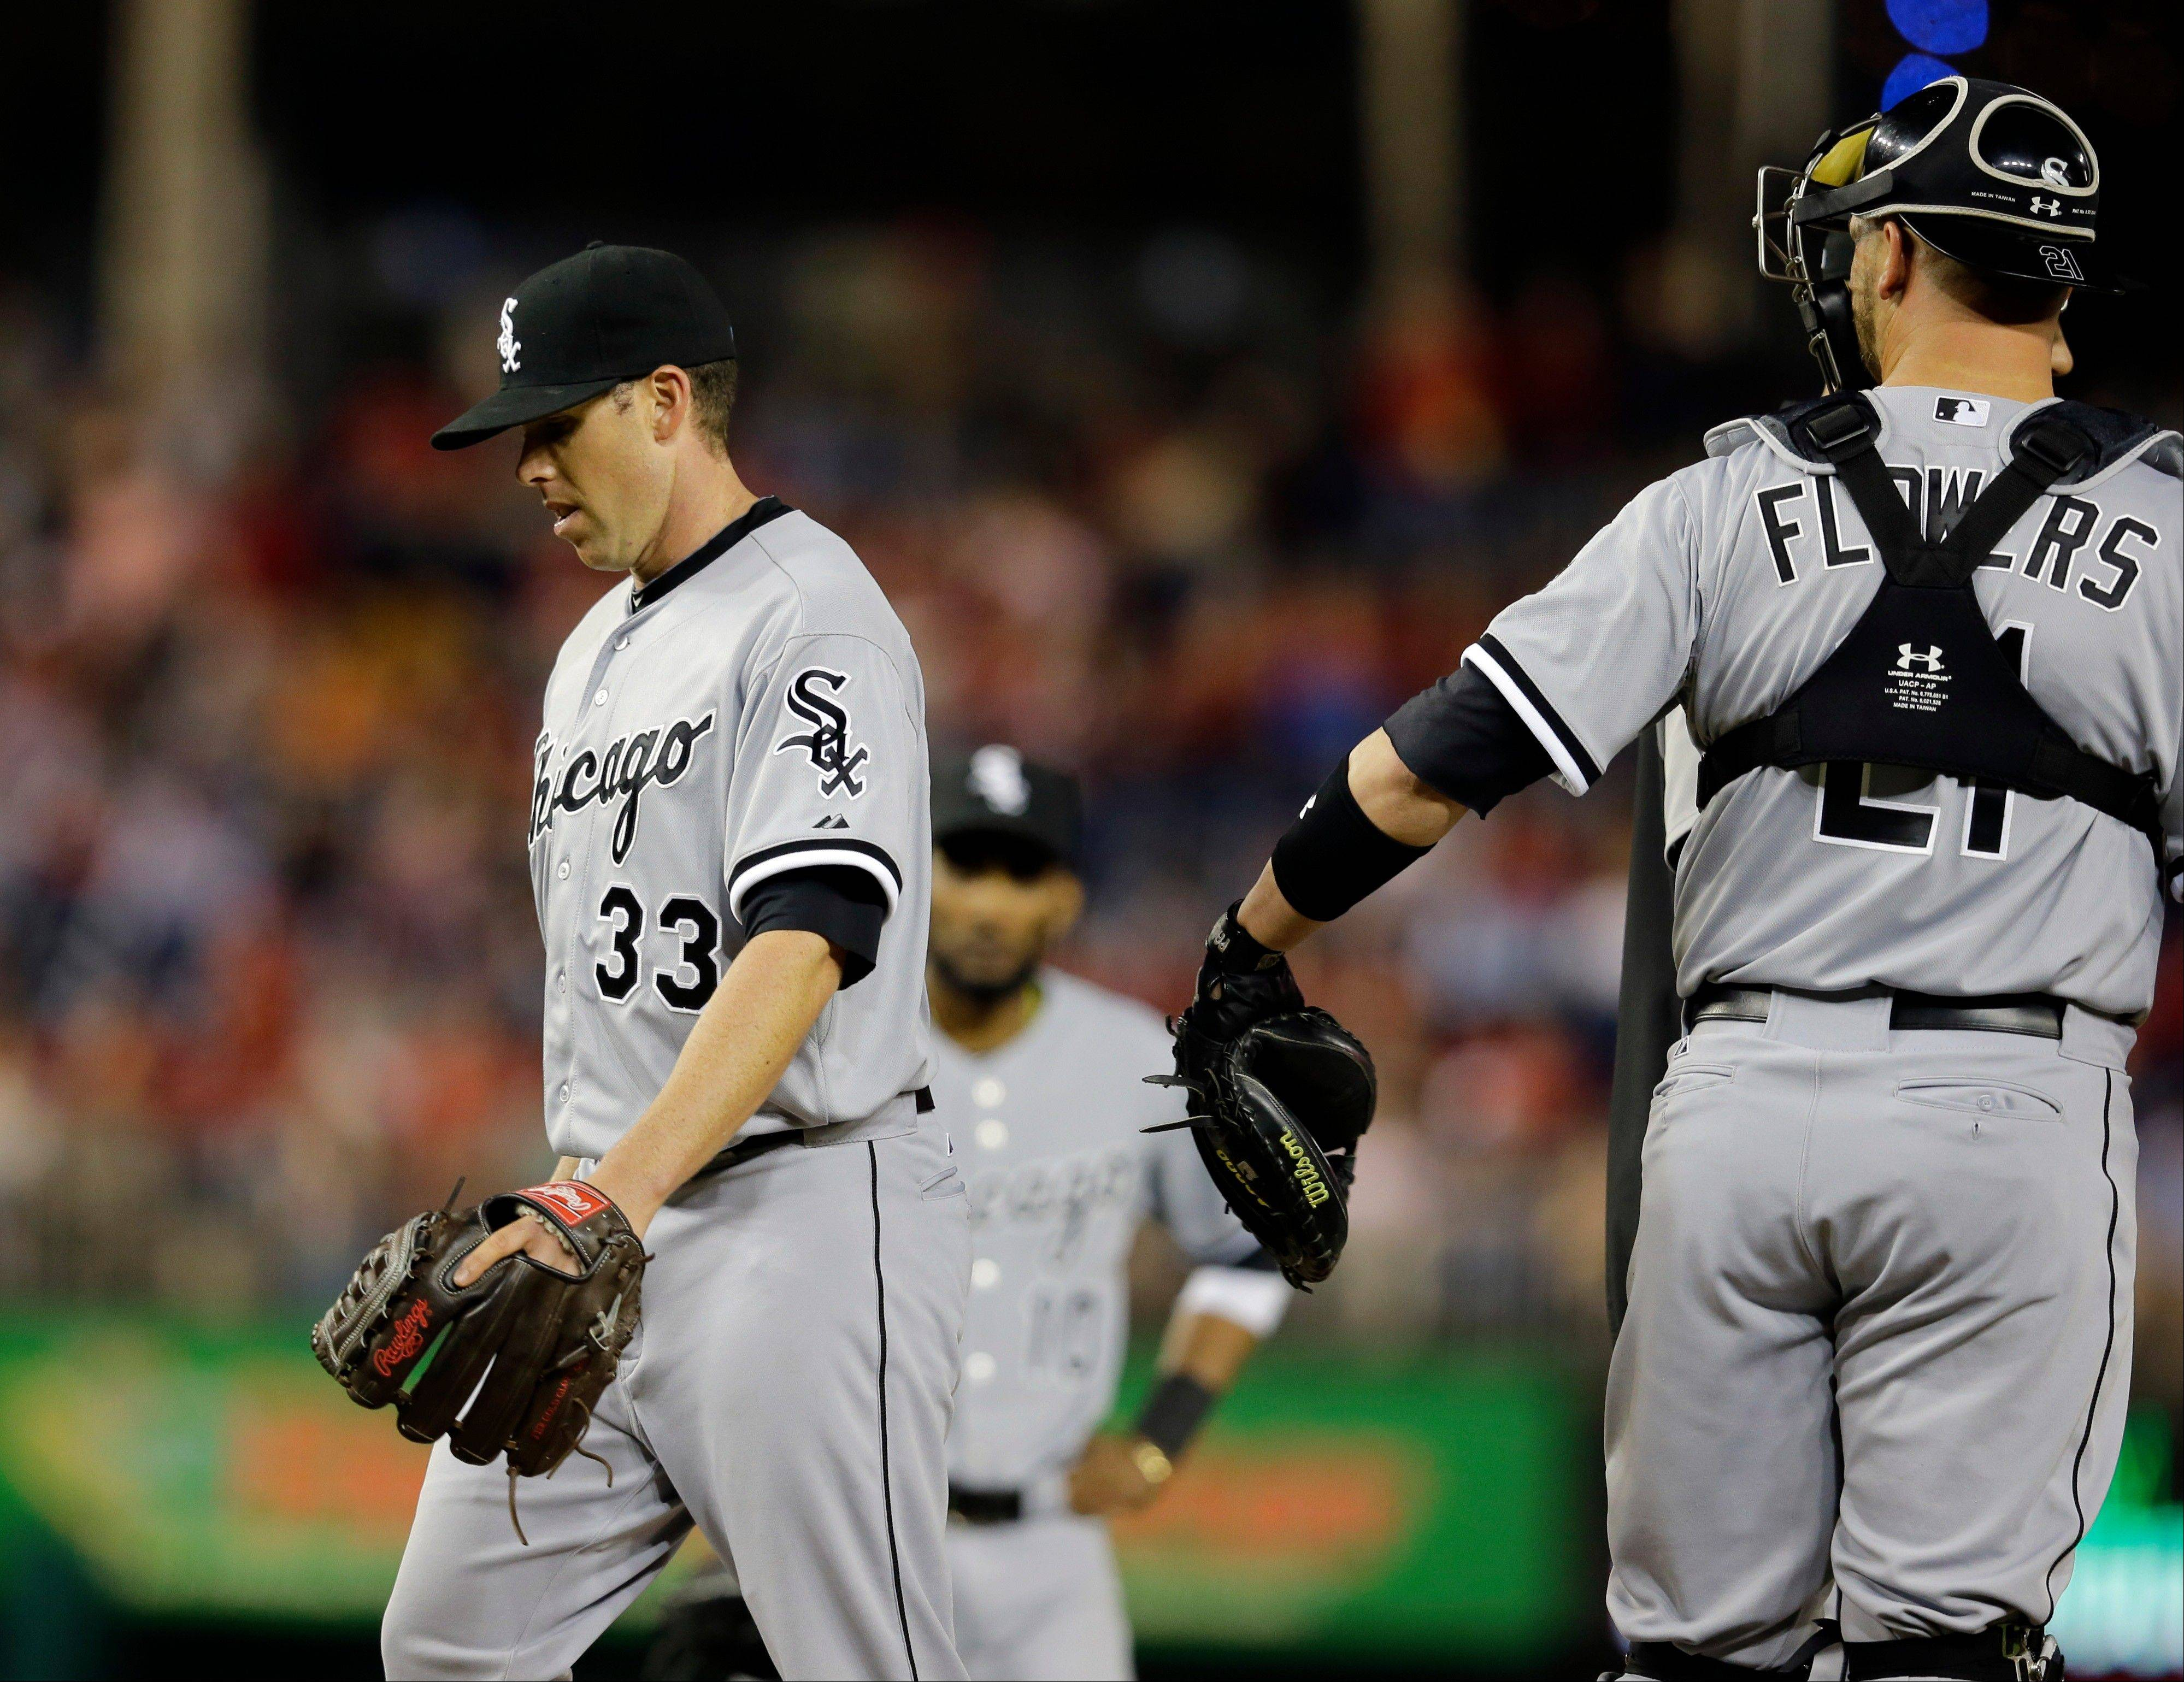 White Sox starting pitcher Dylan Axelrod walks to the dugout past catcher Tyler Flowers as he is removed during the fourth inning in Thursday night's loss to the Washington Nationals.